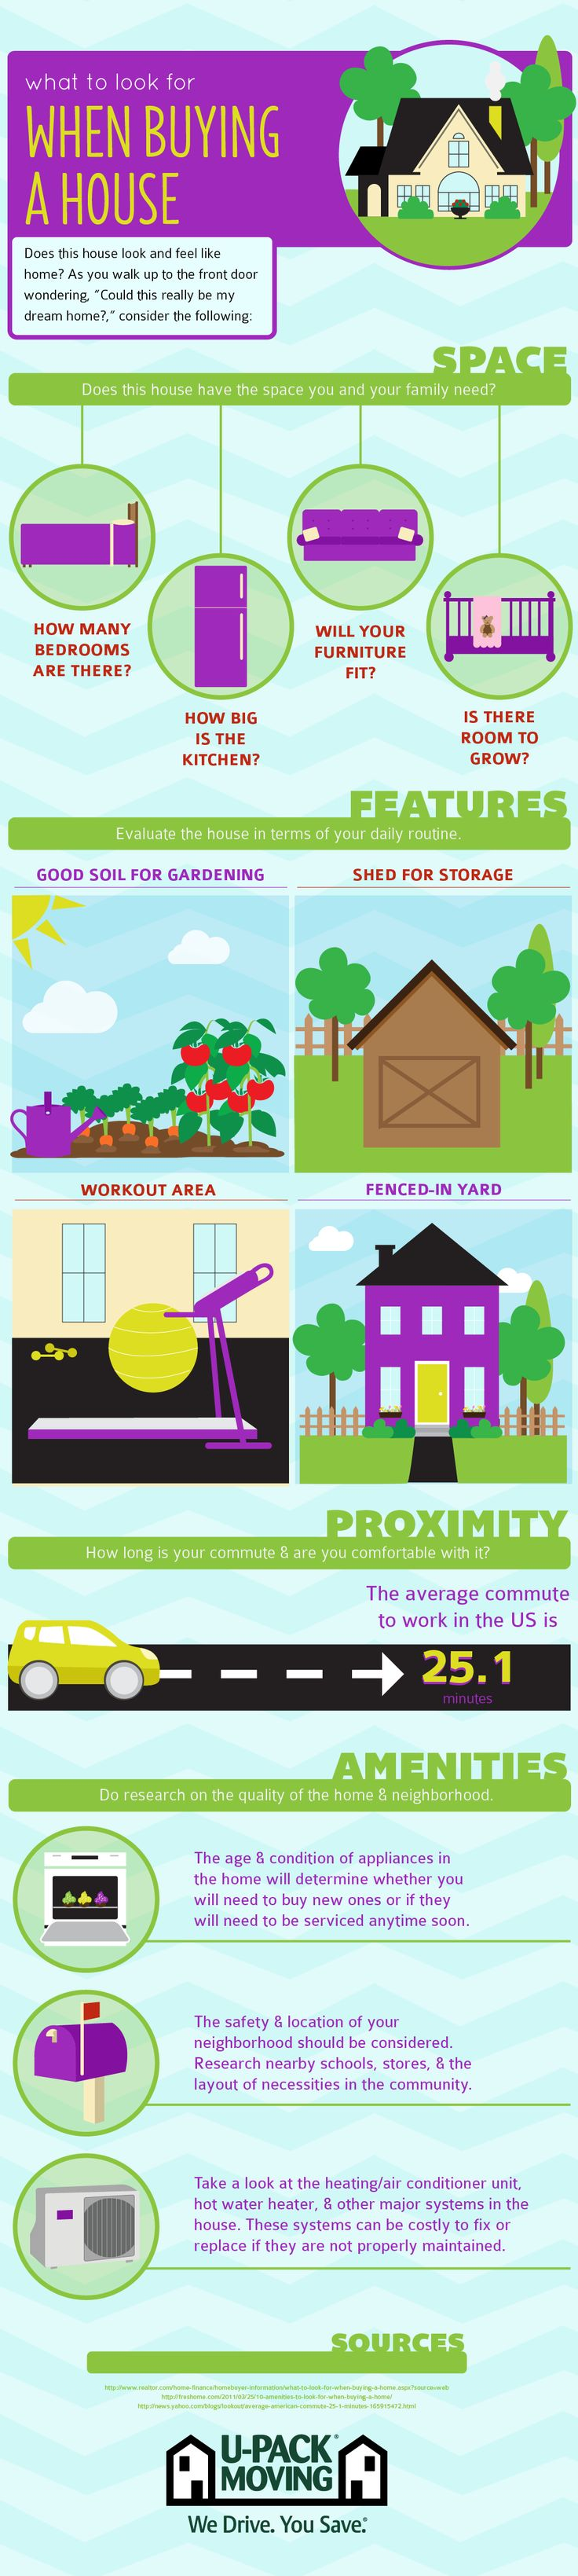 What To Look For When Buying A House | Paul Warner, Warner Home Group Of